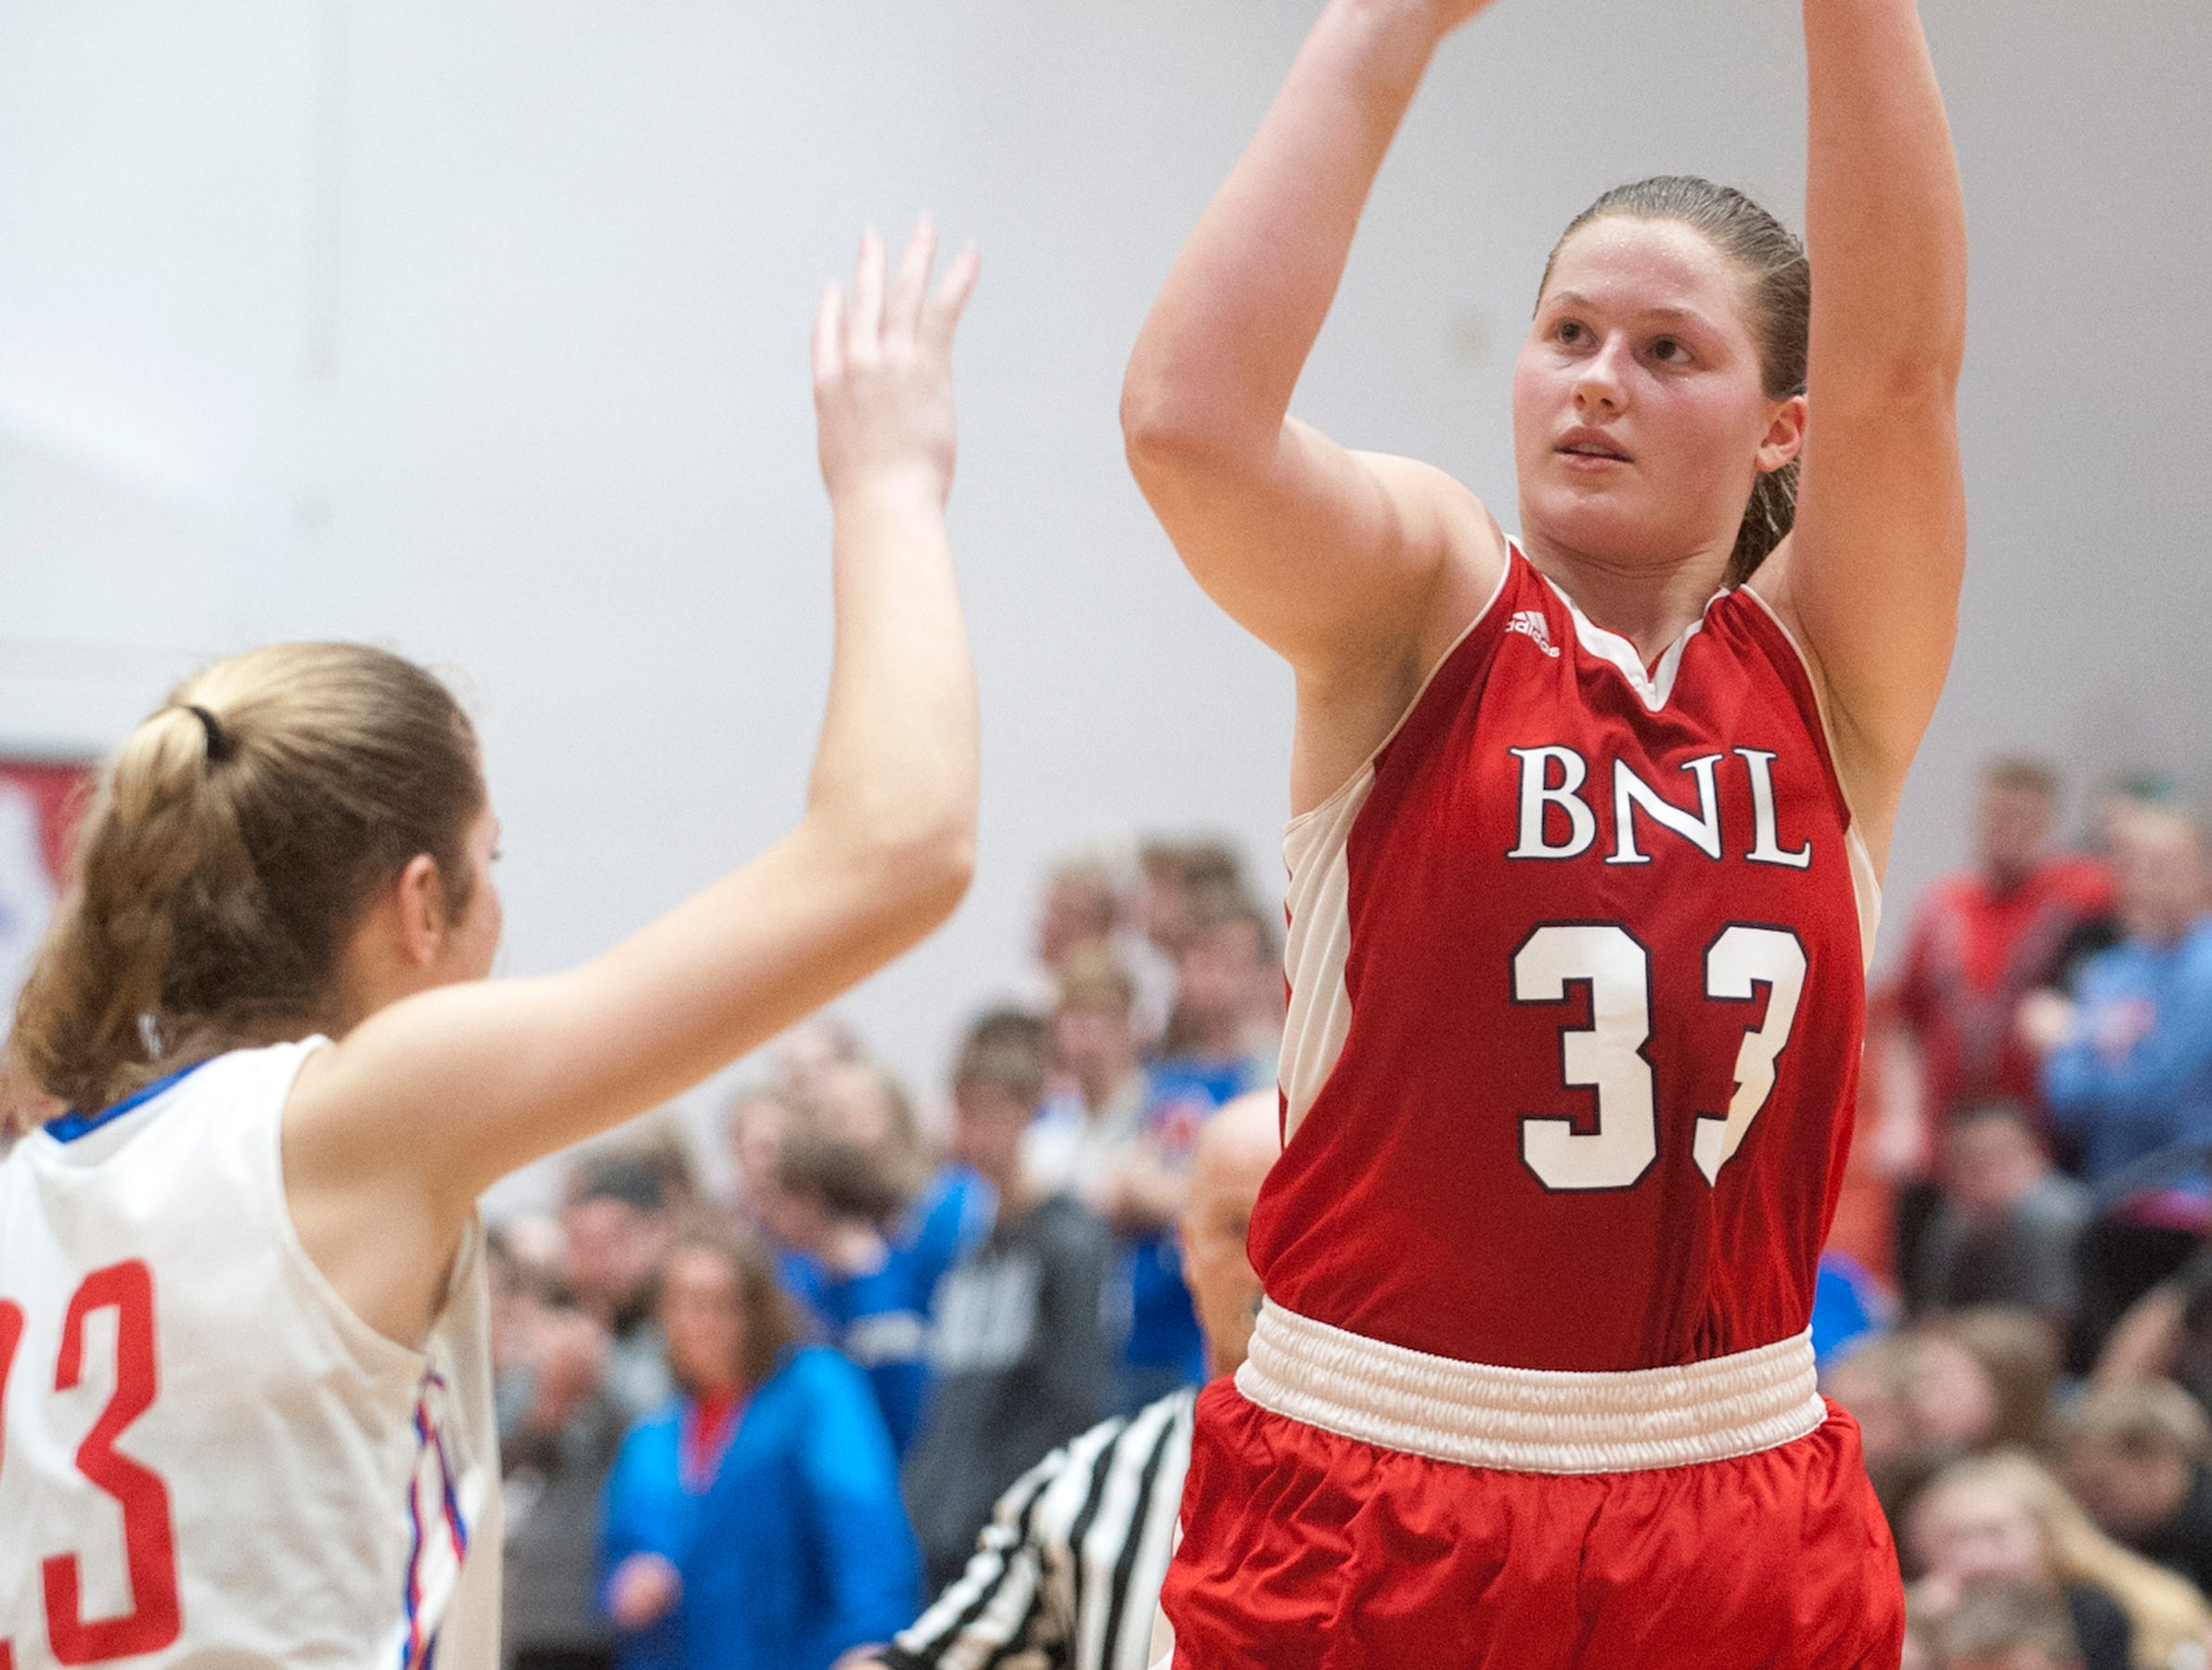 Bedford North Lawrence forward Jorie Allen puts up a 3-point who over Jennings County center-forward Callie Wilder, left.04 February 2019